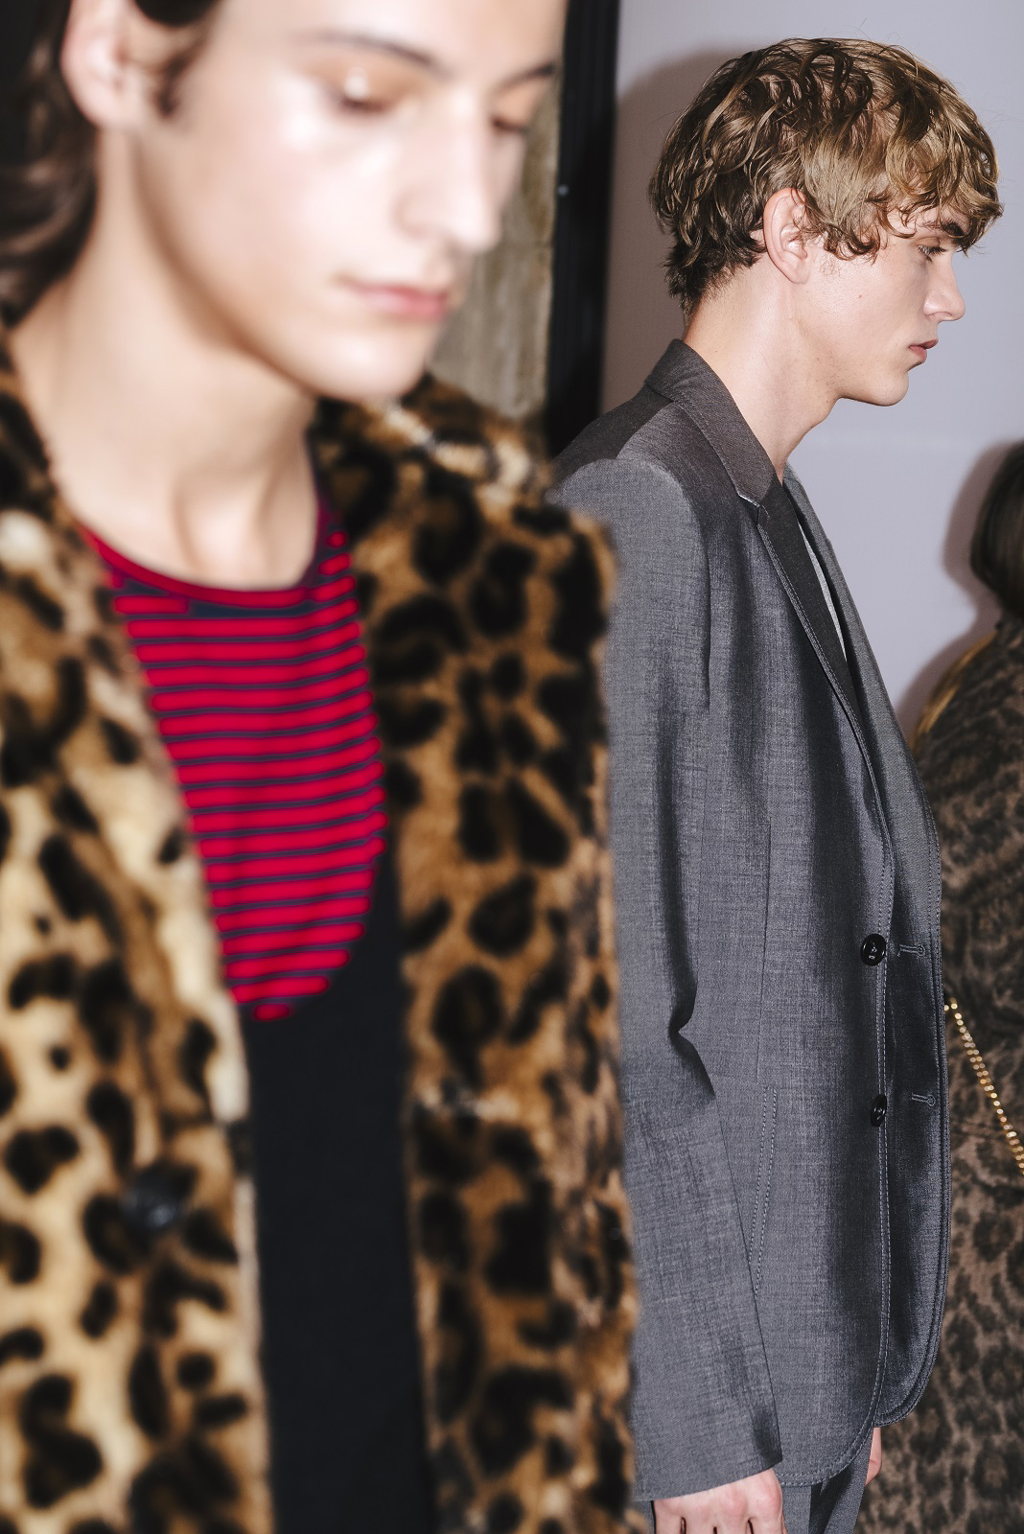 male model with leopard print jackets and male model with gray suit